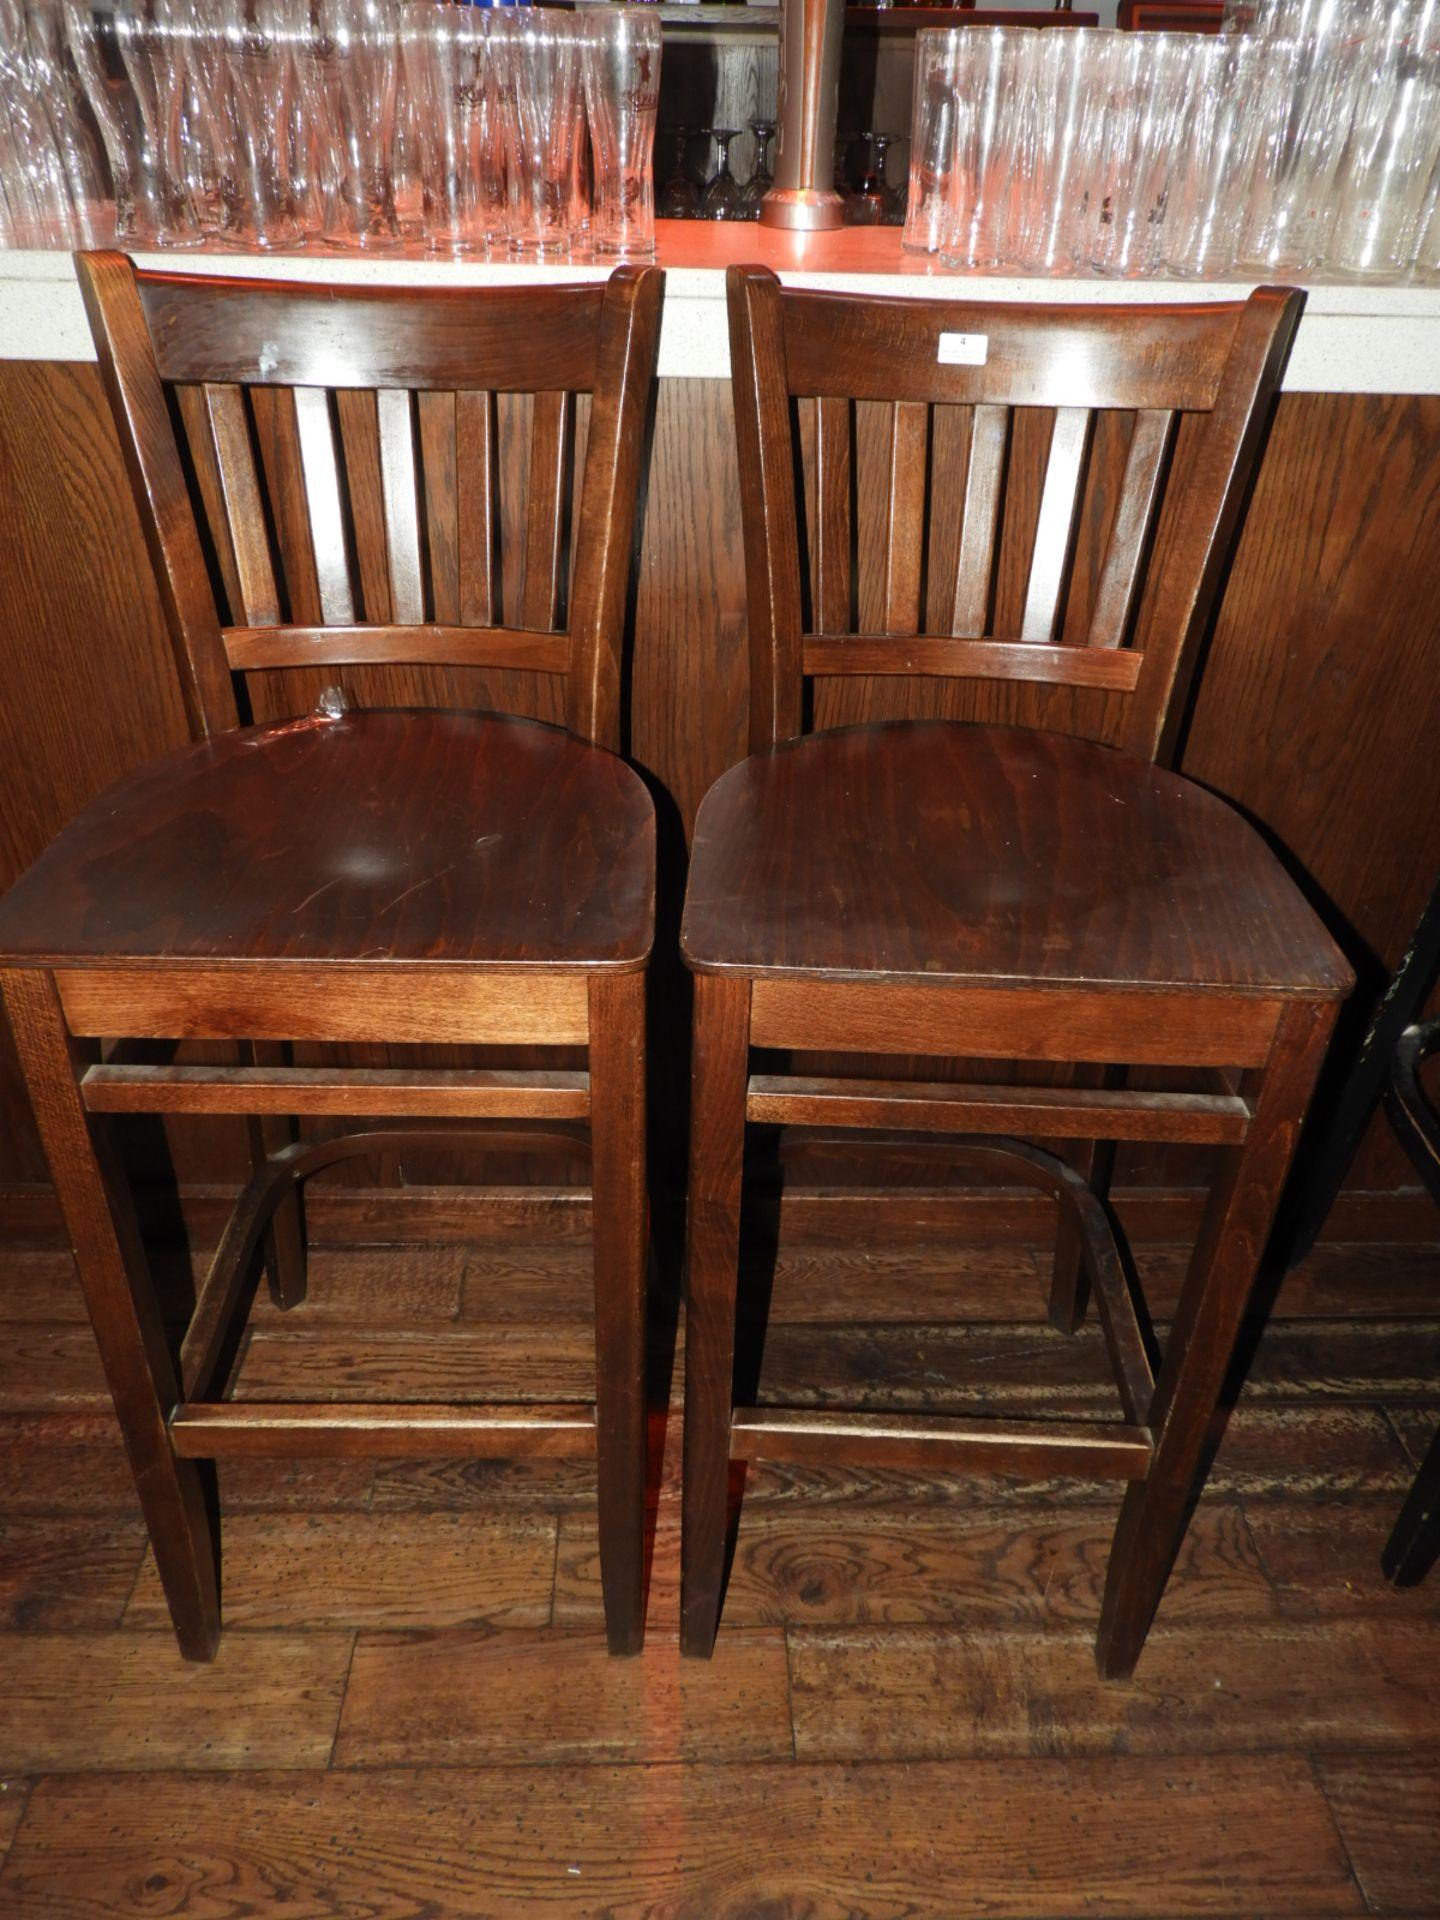 Lot 4 - *Pair of Wood Seated Slat Back Bar Stools